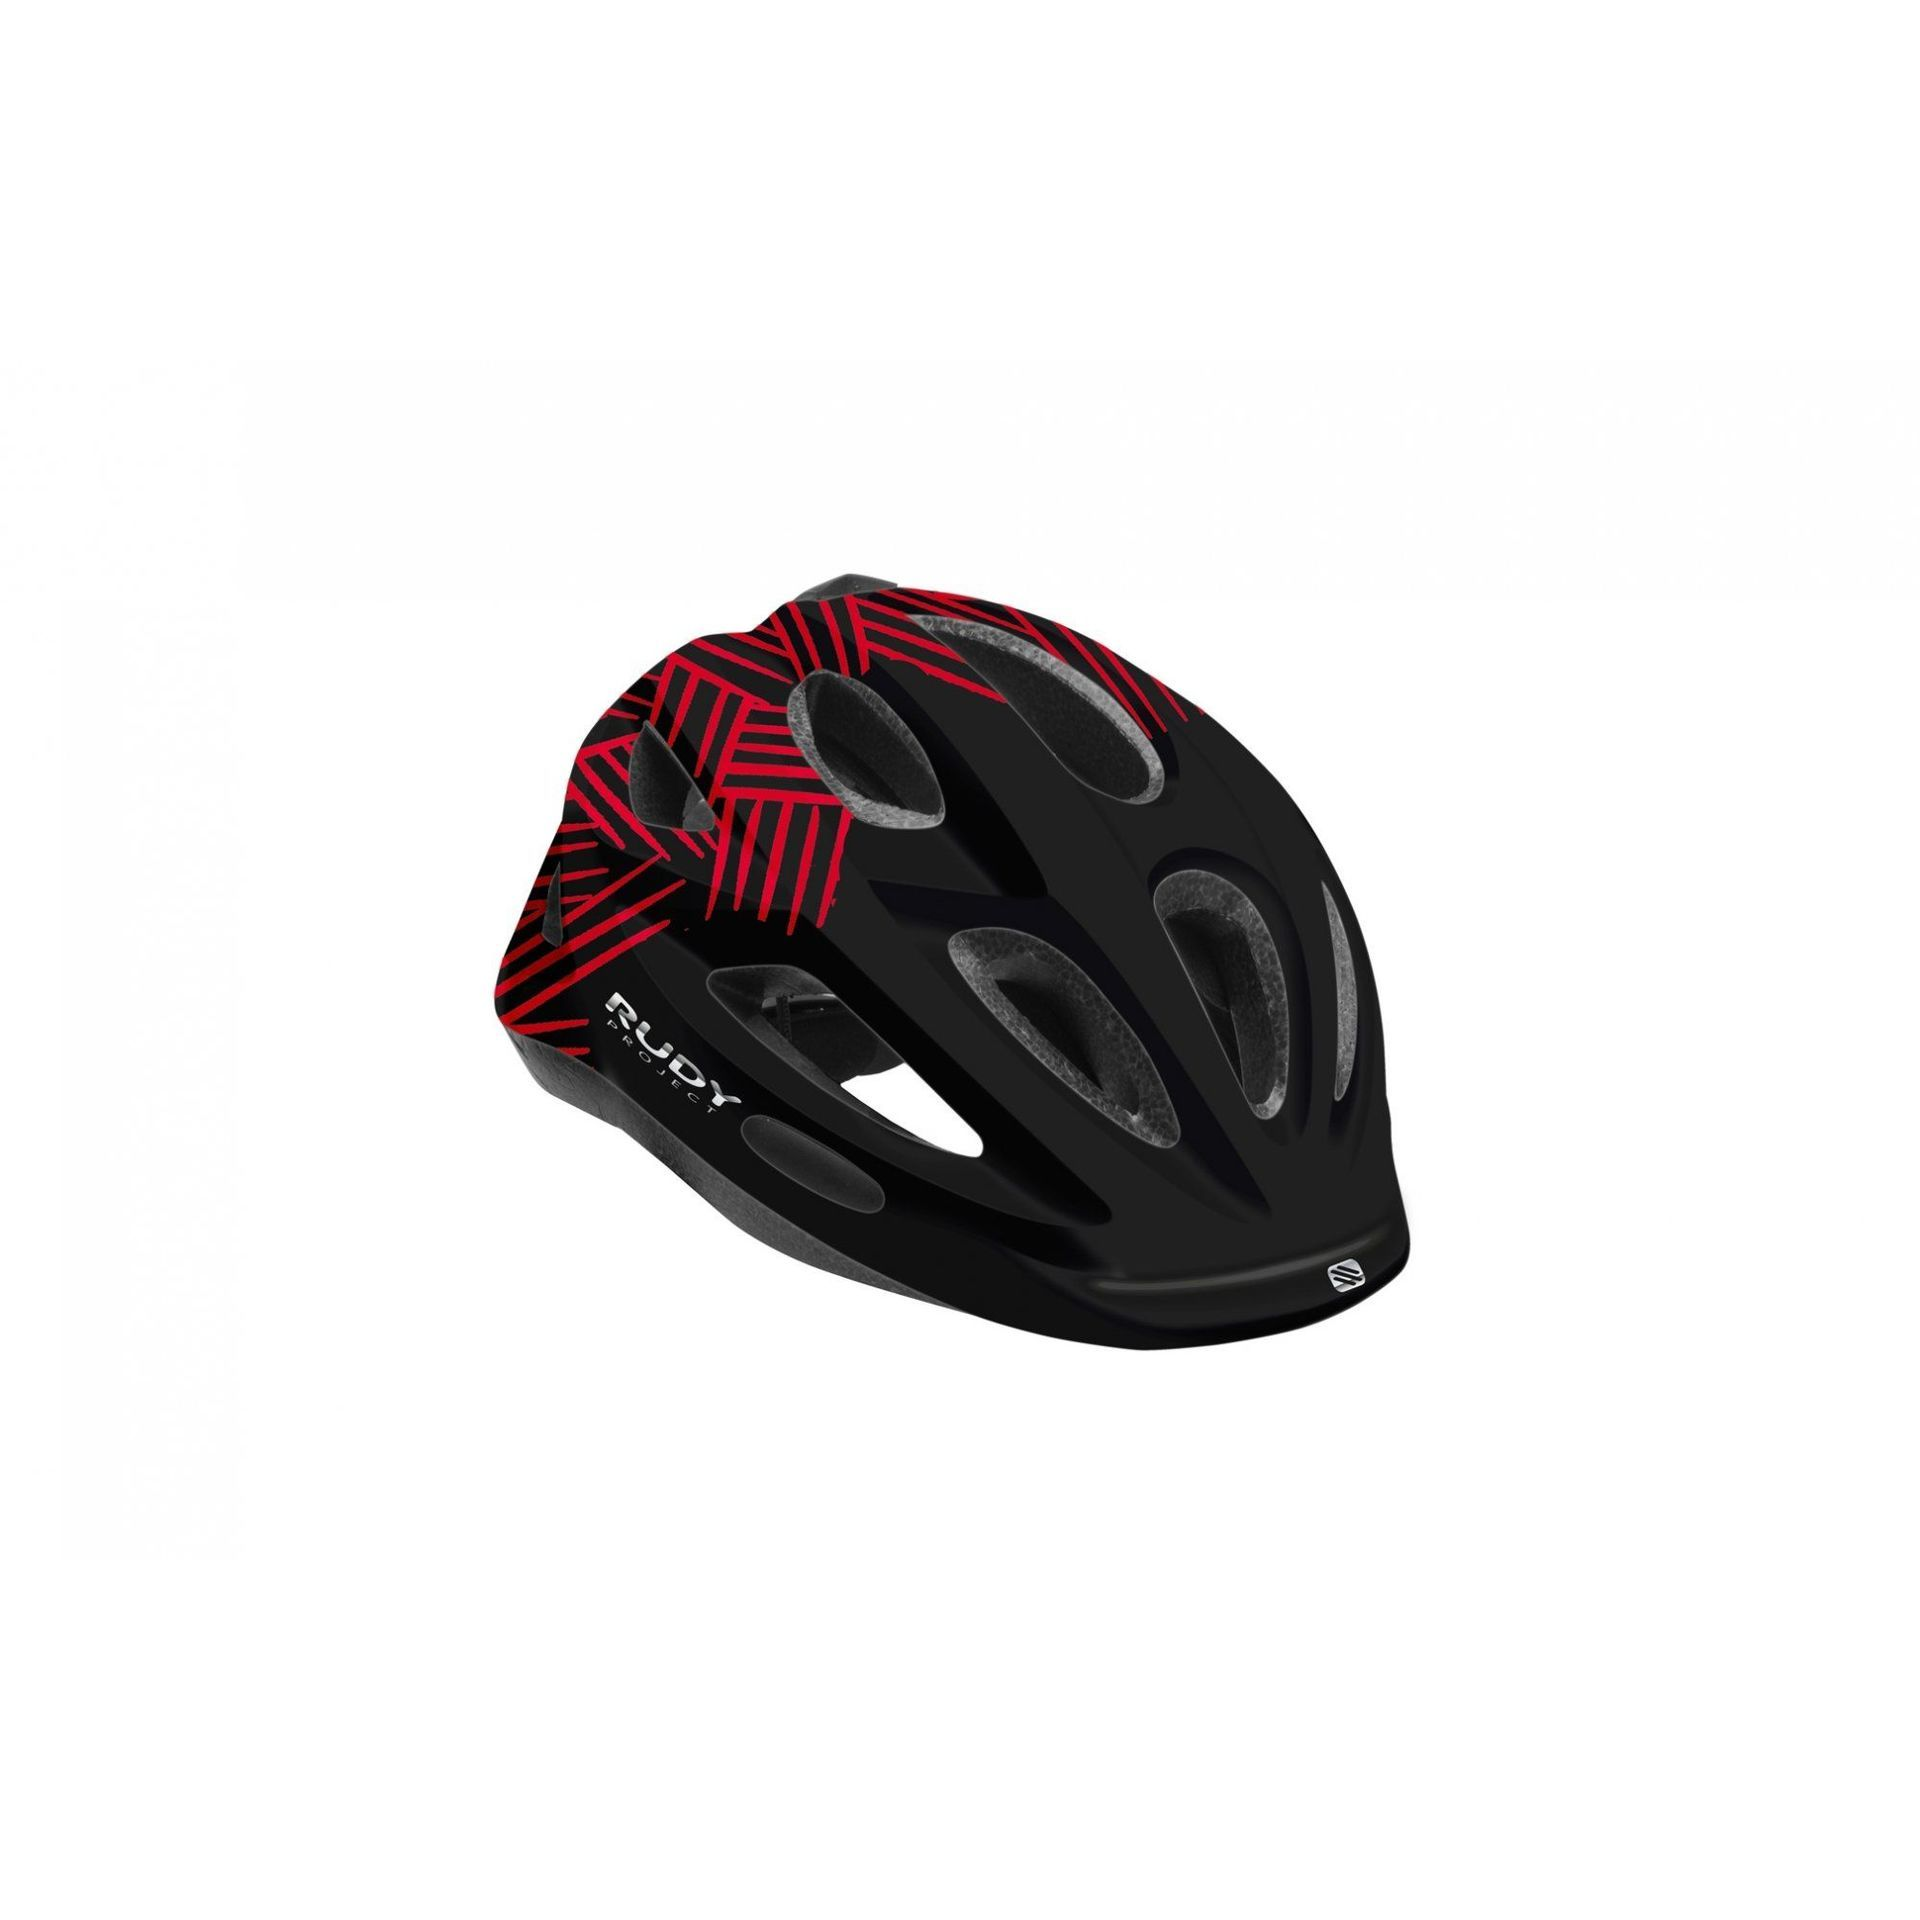 KASK ROWEROWY RUDY PROJECT ROCKY BLACK|RED HL700031